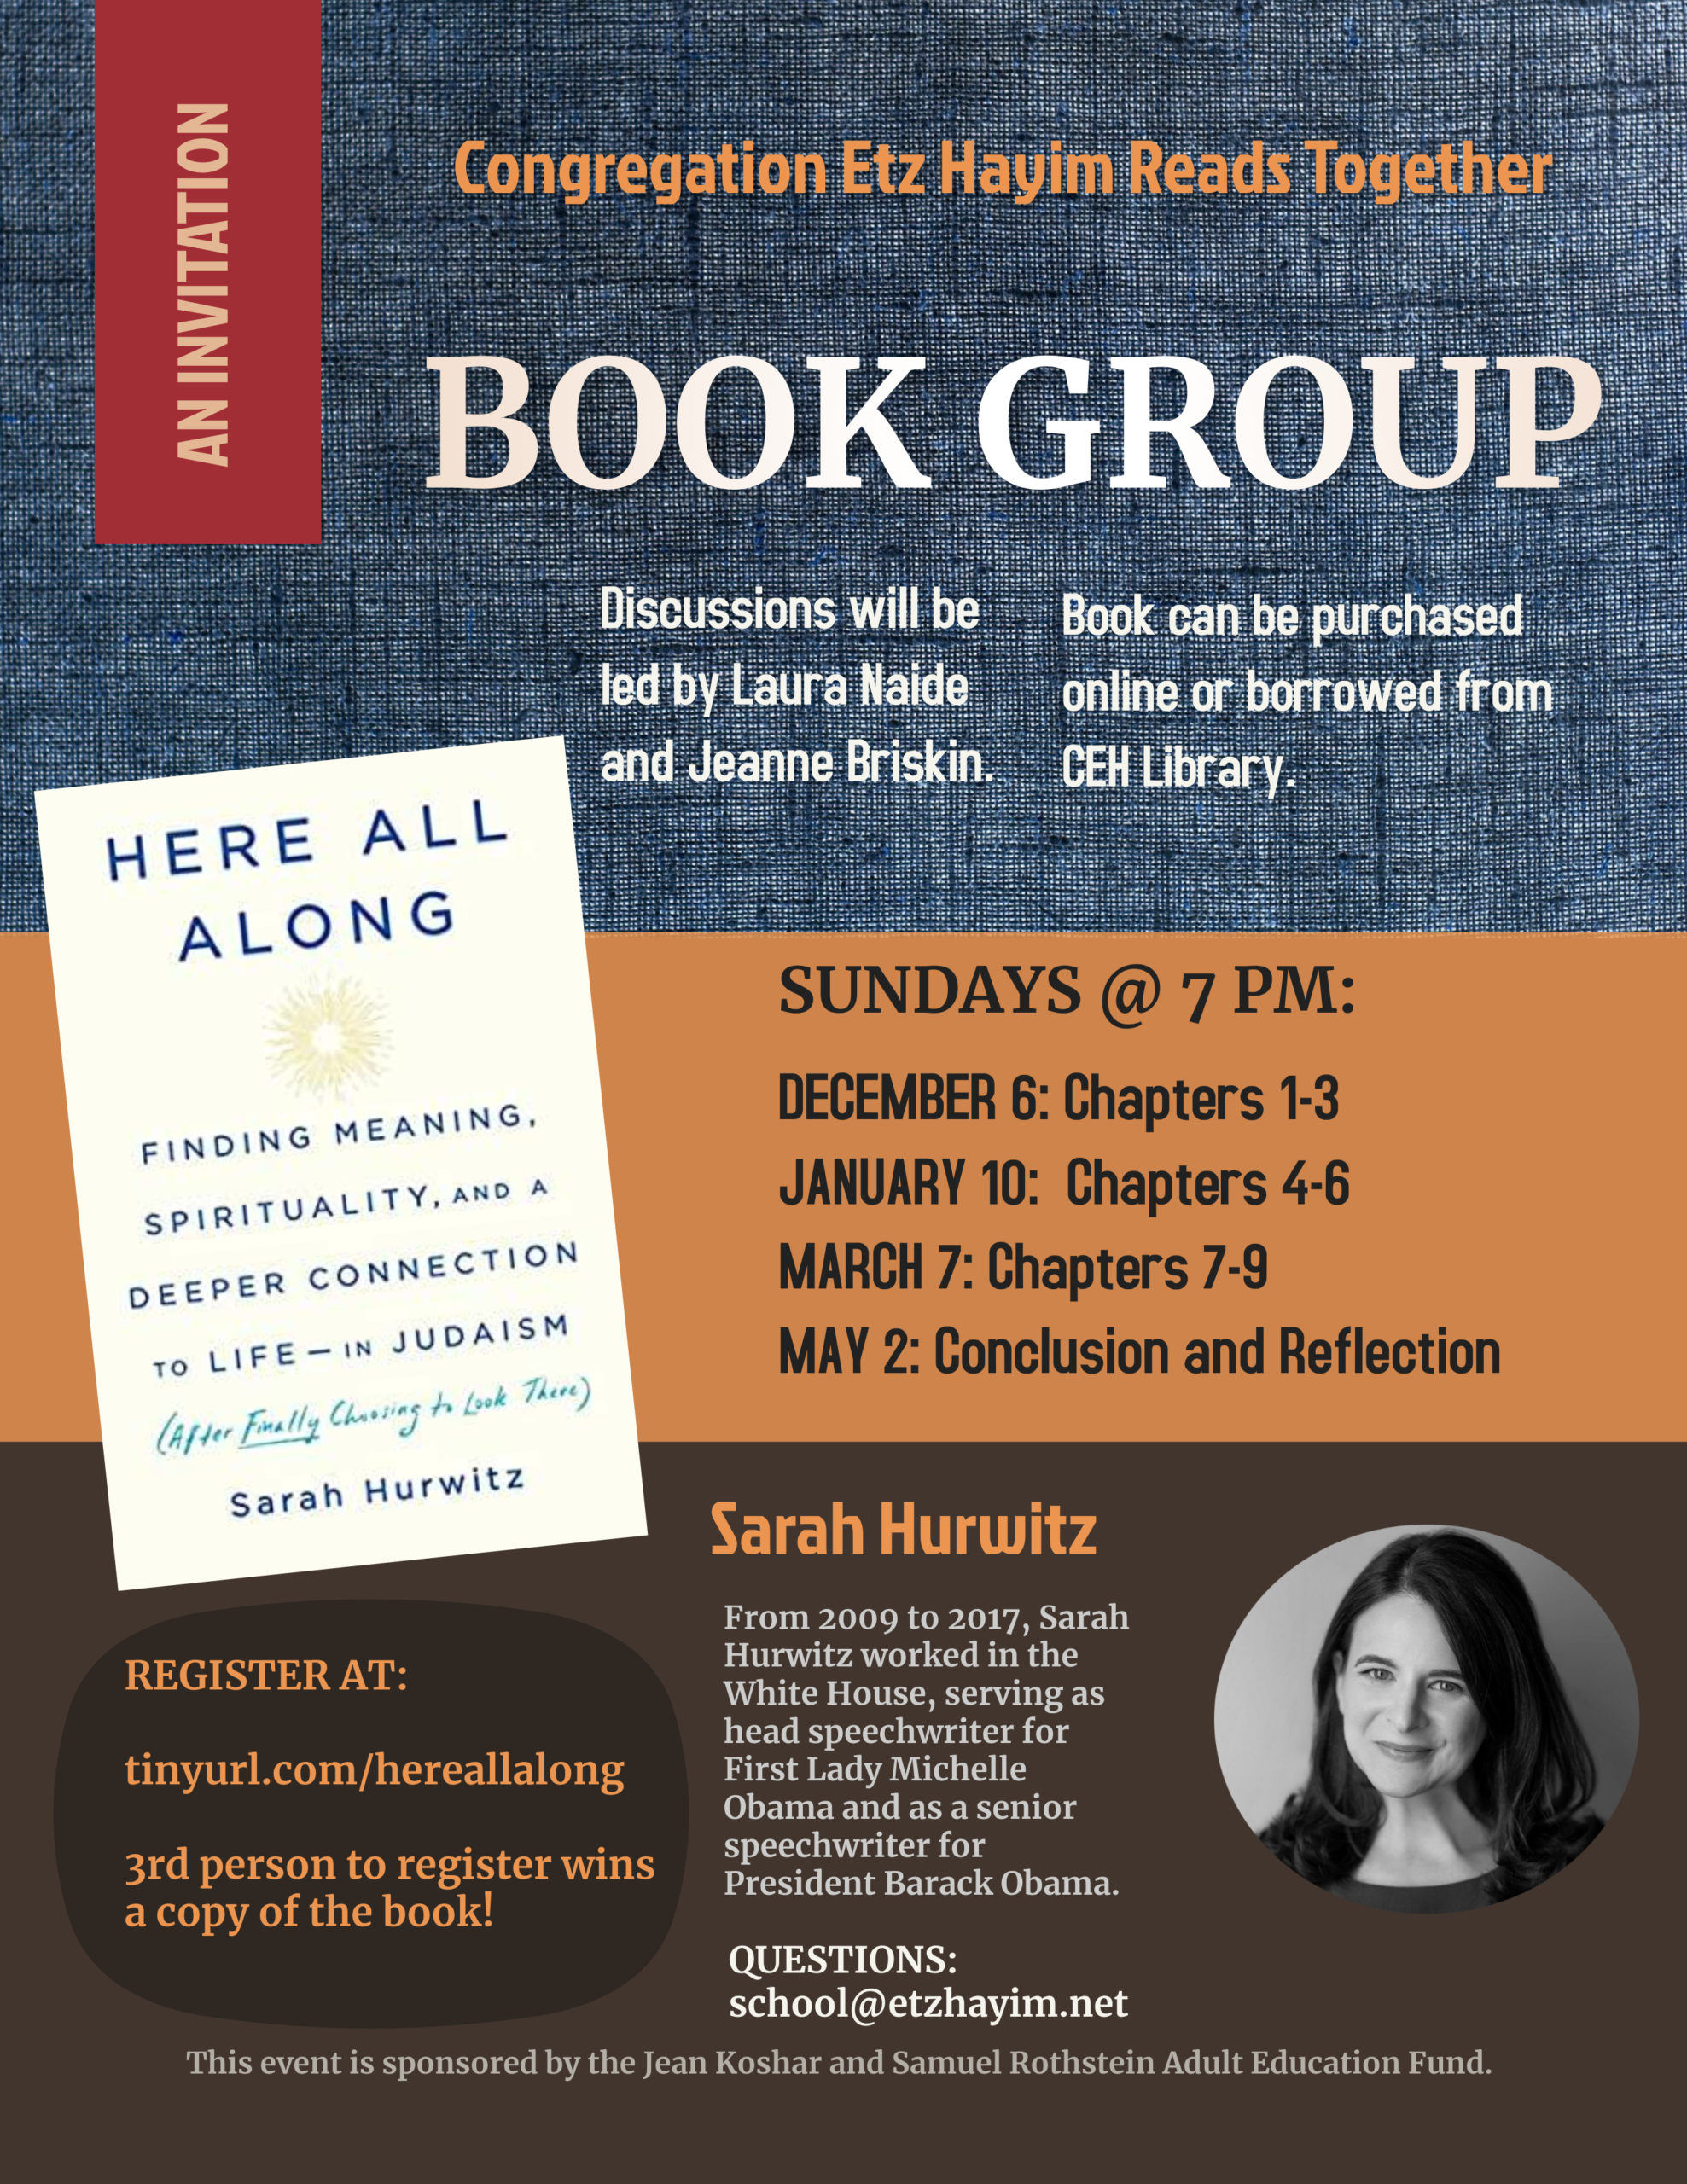 Book Group: Here All Along: Finding Meaning, Spirituality, and a Deeper Connection to Life in Judaism